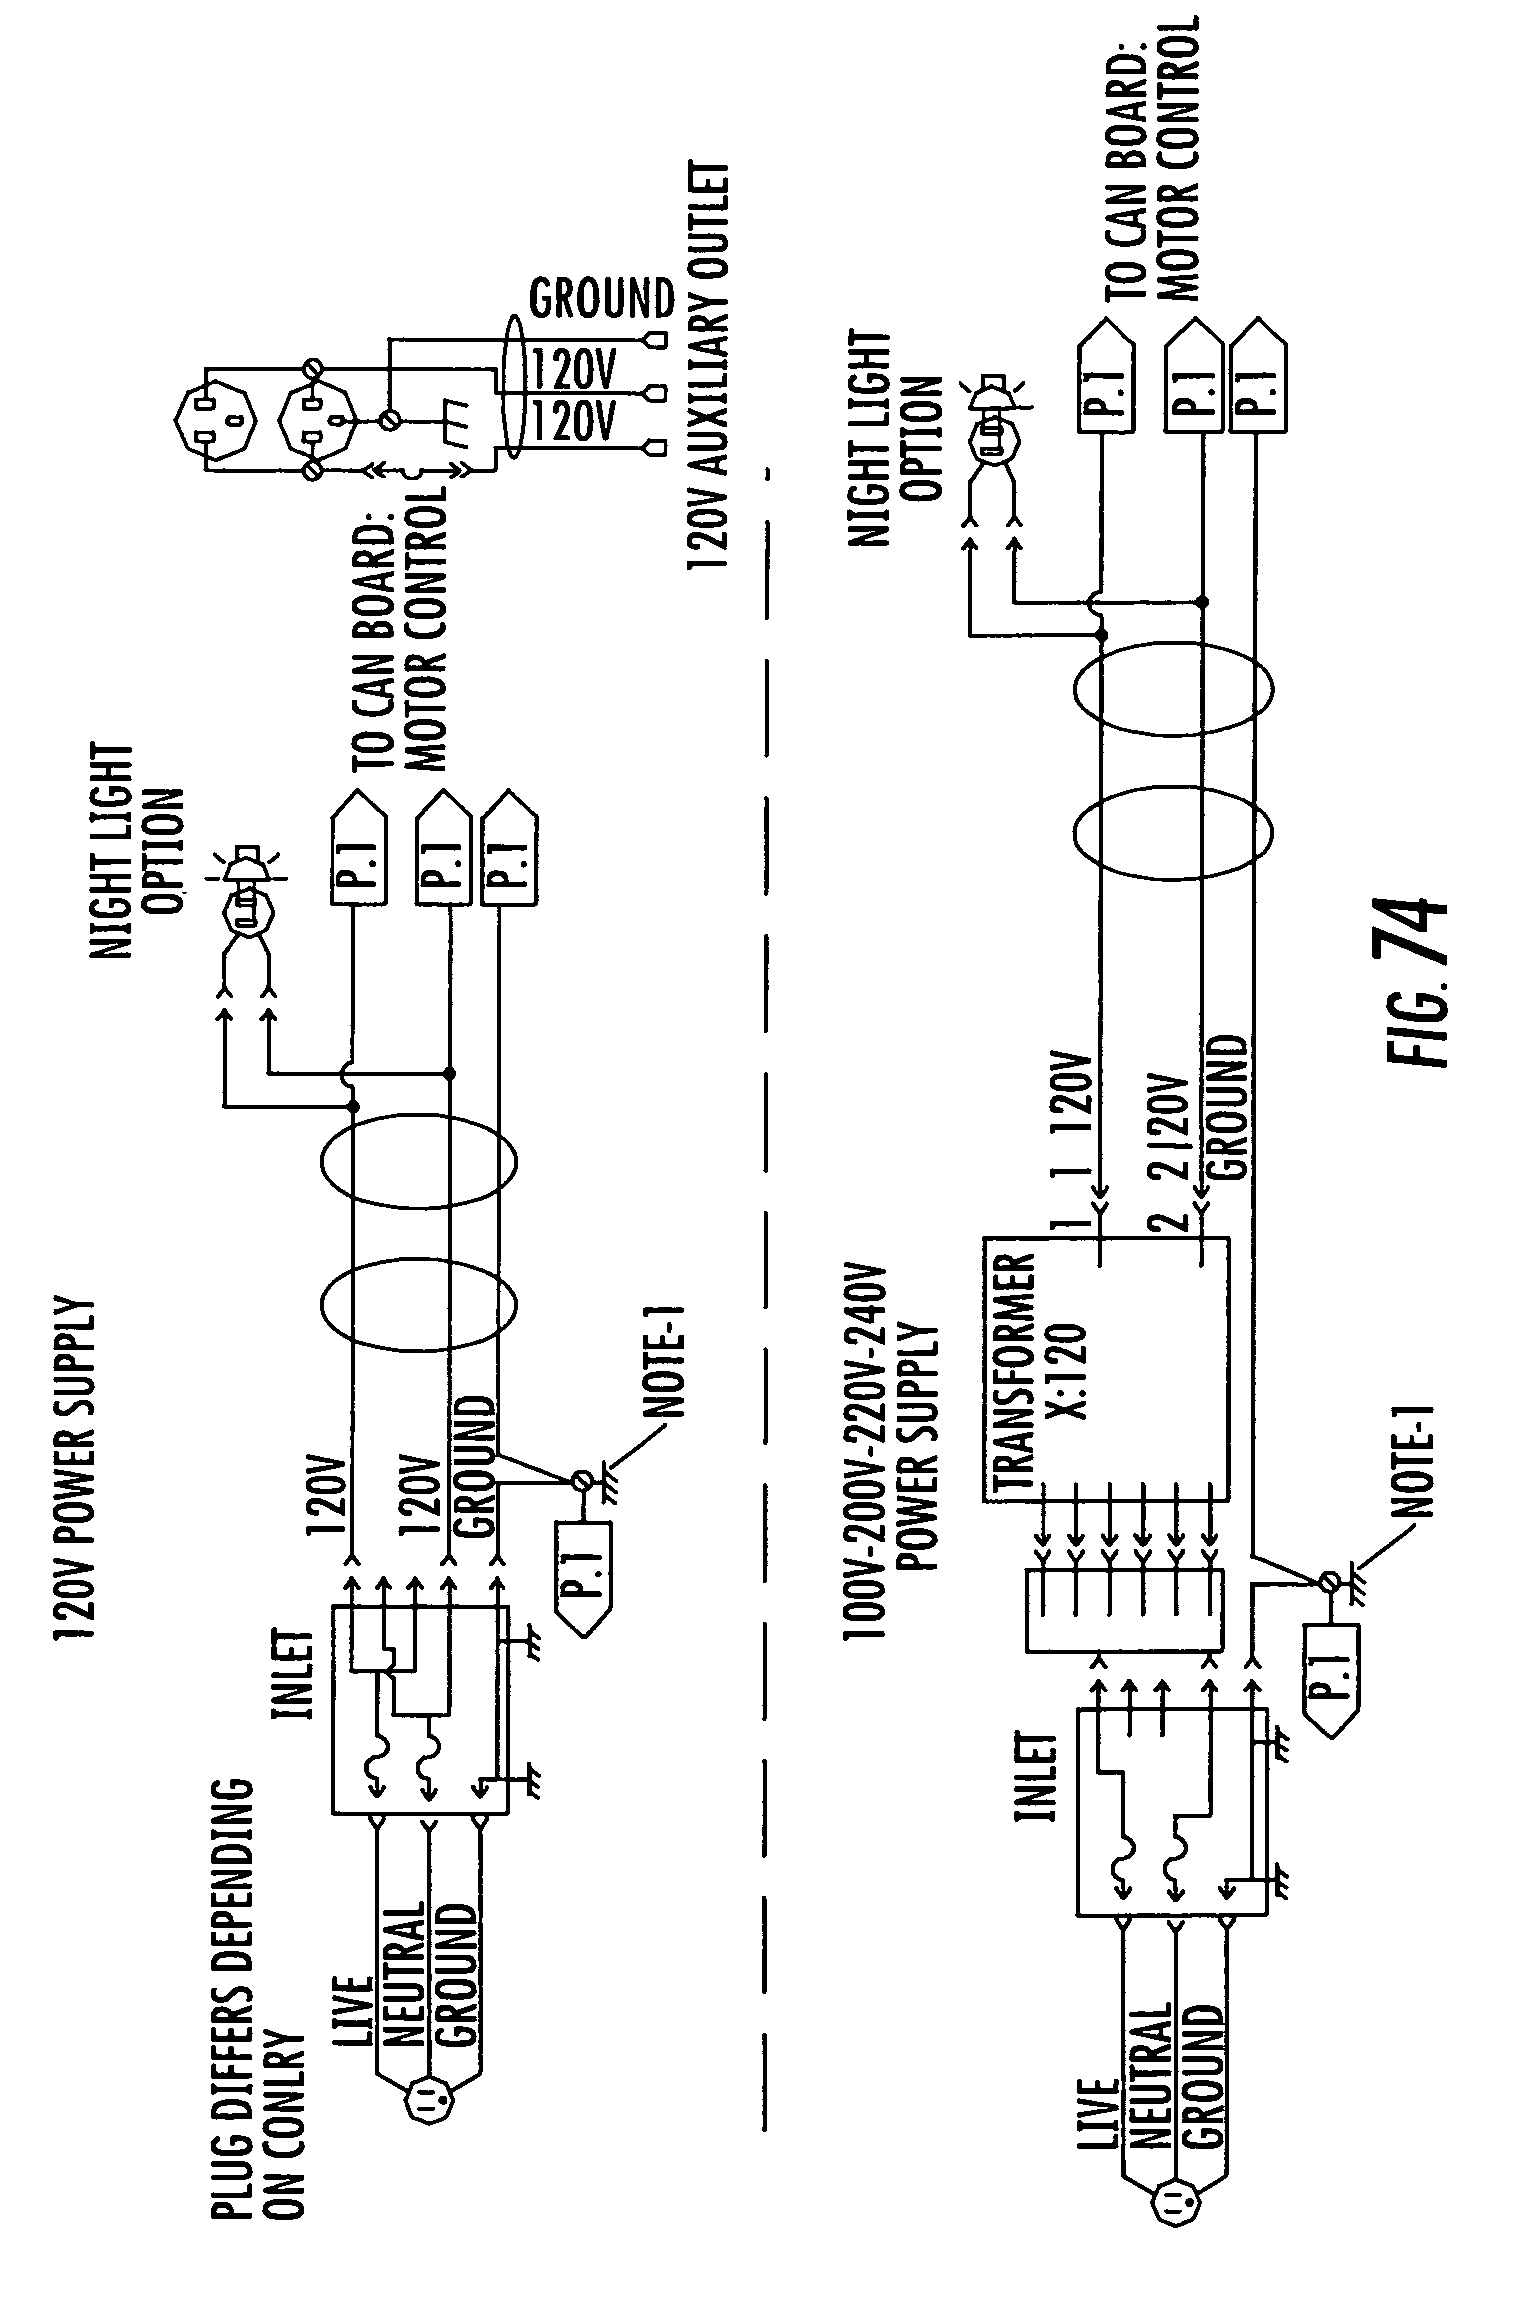 Patent Us 7962981 B2 Power Supply Block Diagram Source Abuse Report